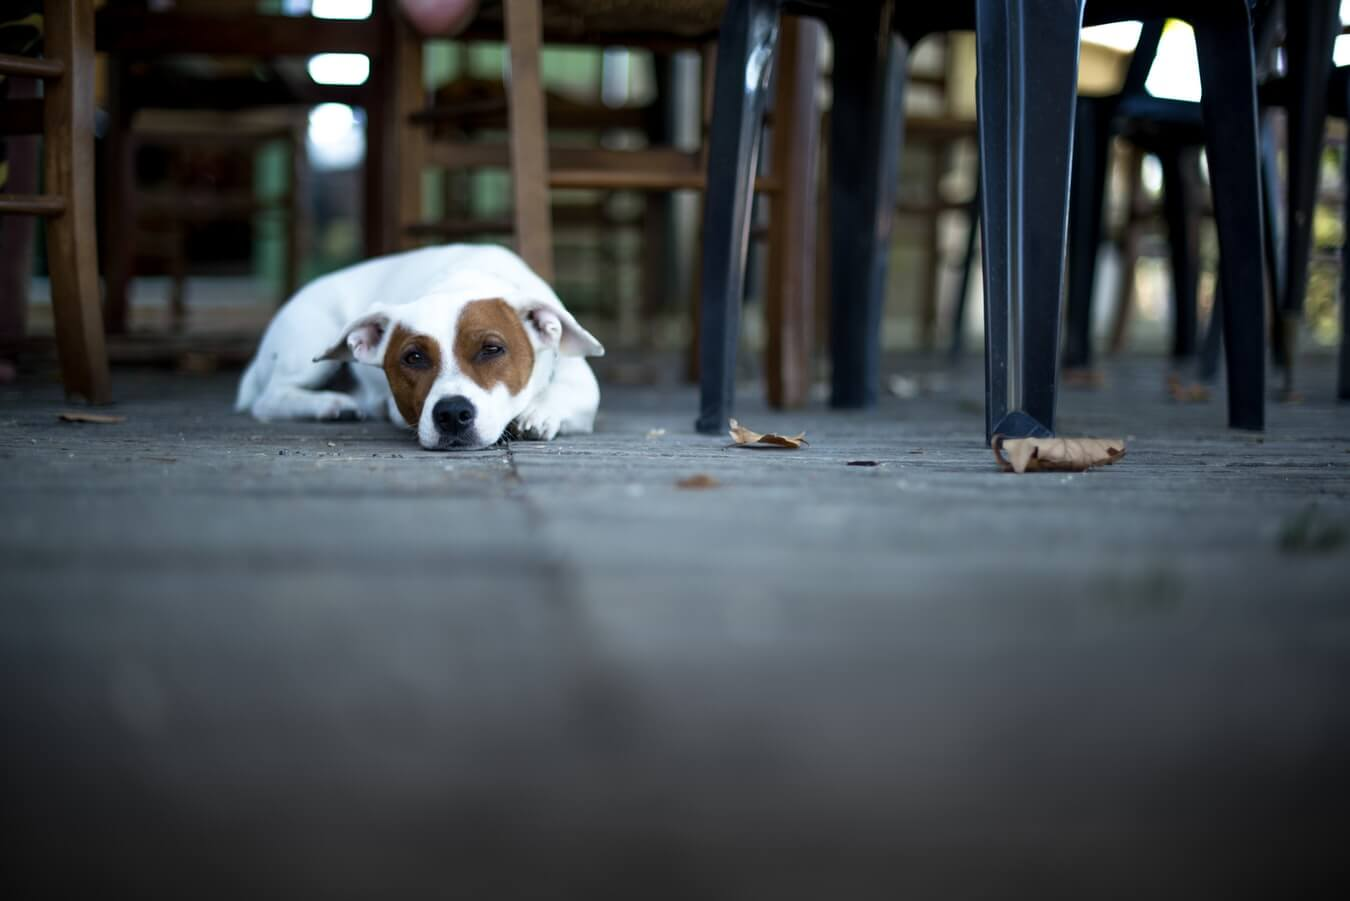 Pups that don't behave can cause problems at a restaurant